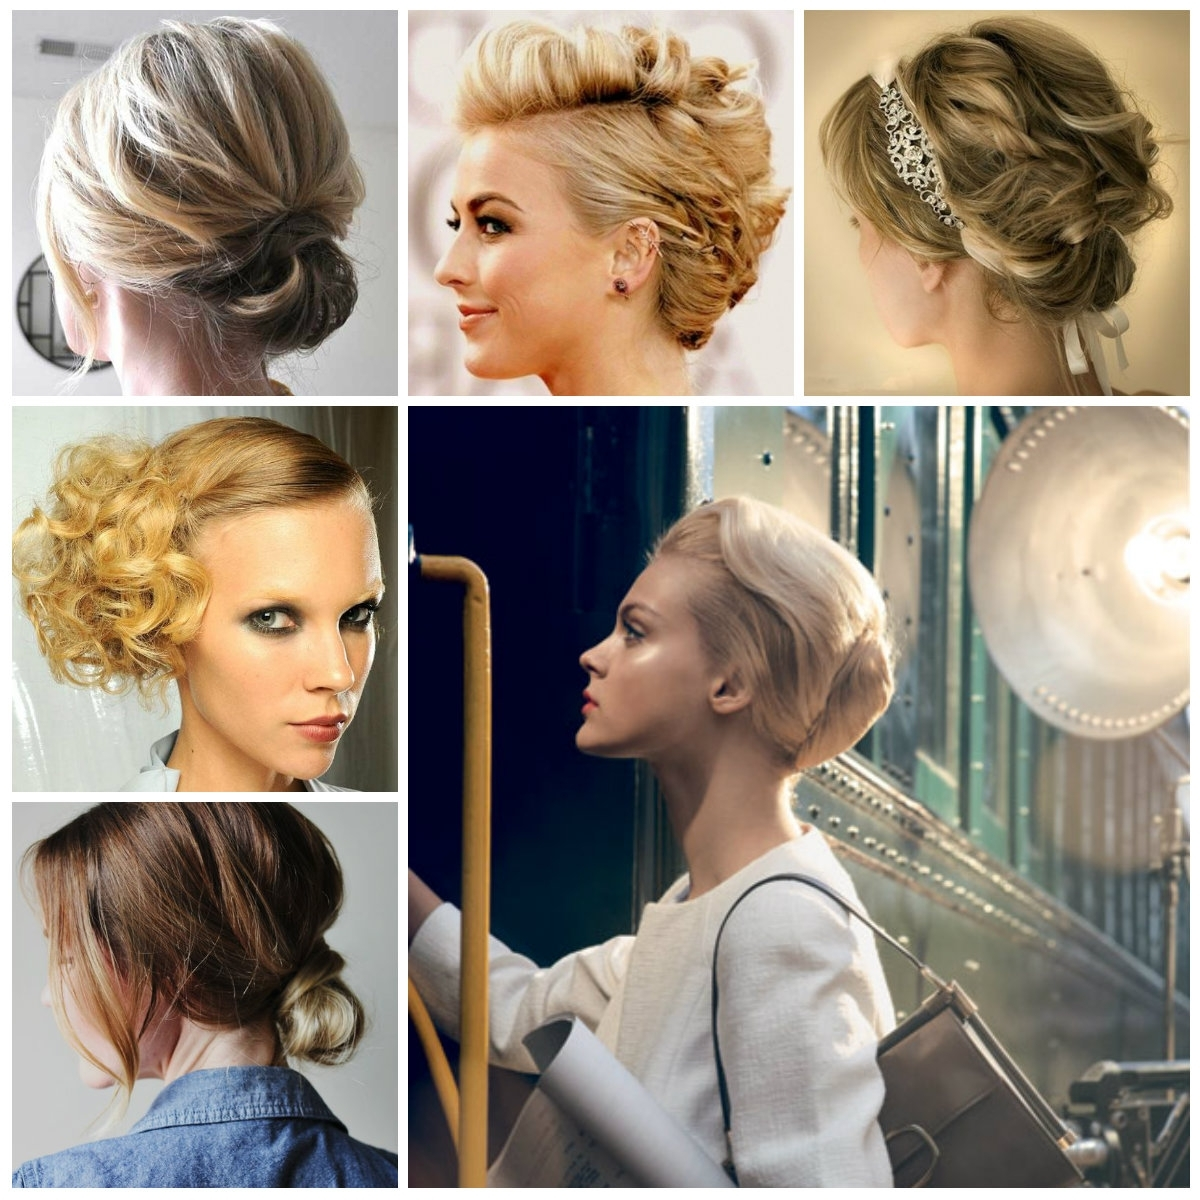 Elegant Hairstyles : Best 3 Elegant Updo Hairstyles For 2017 Inside Elegant Updo Hairstyles For Short Hair (View 7 of 15)